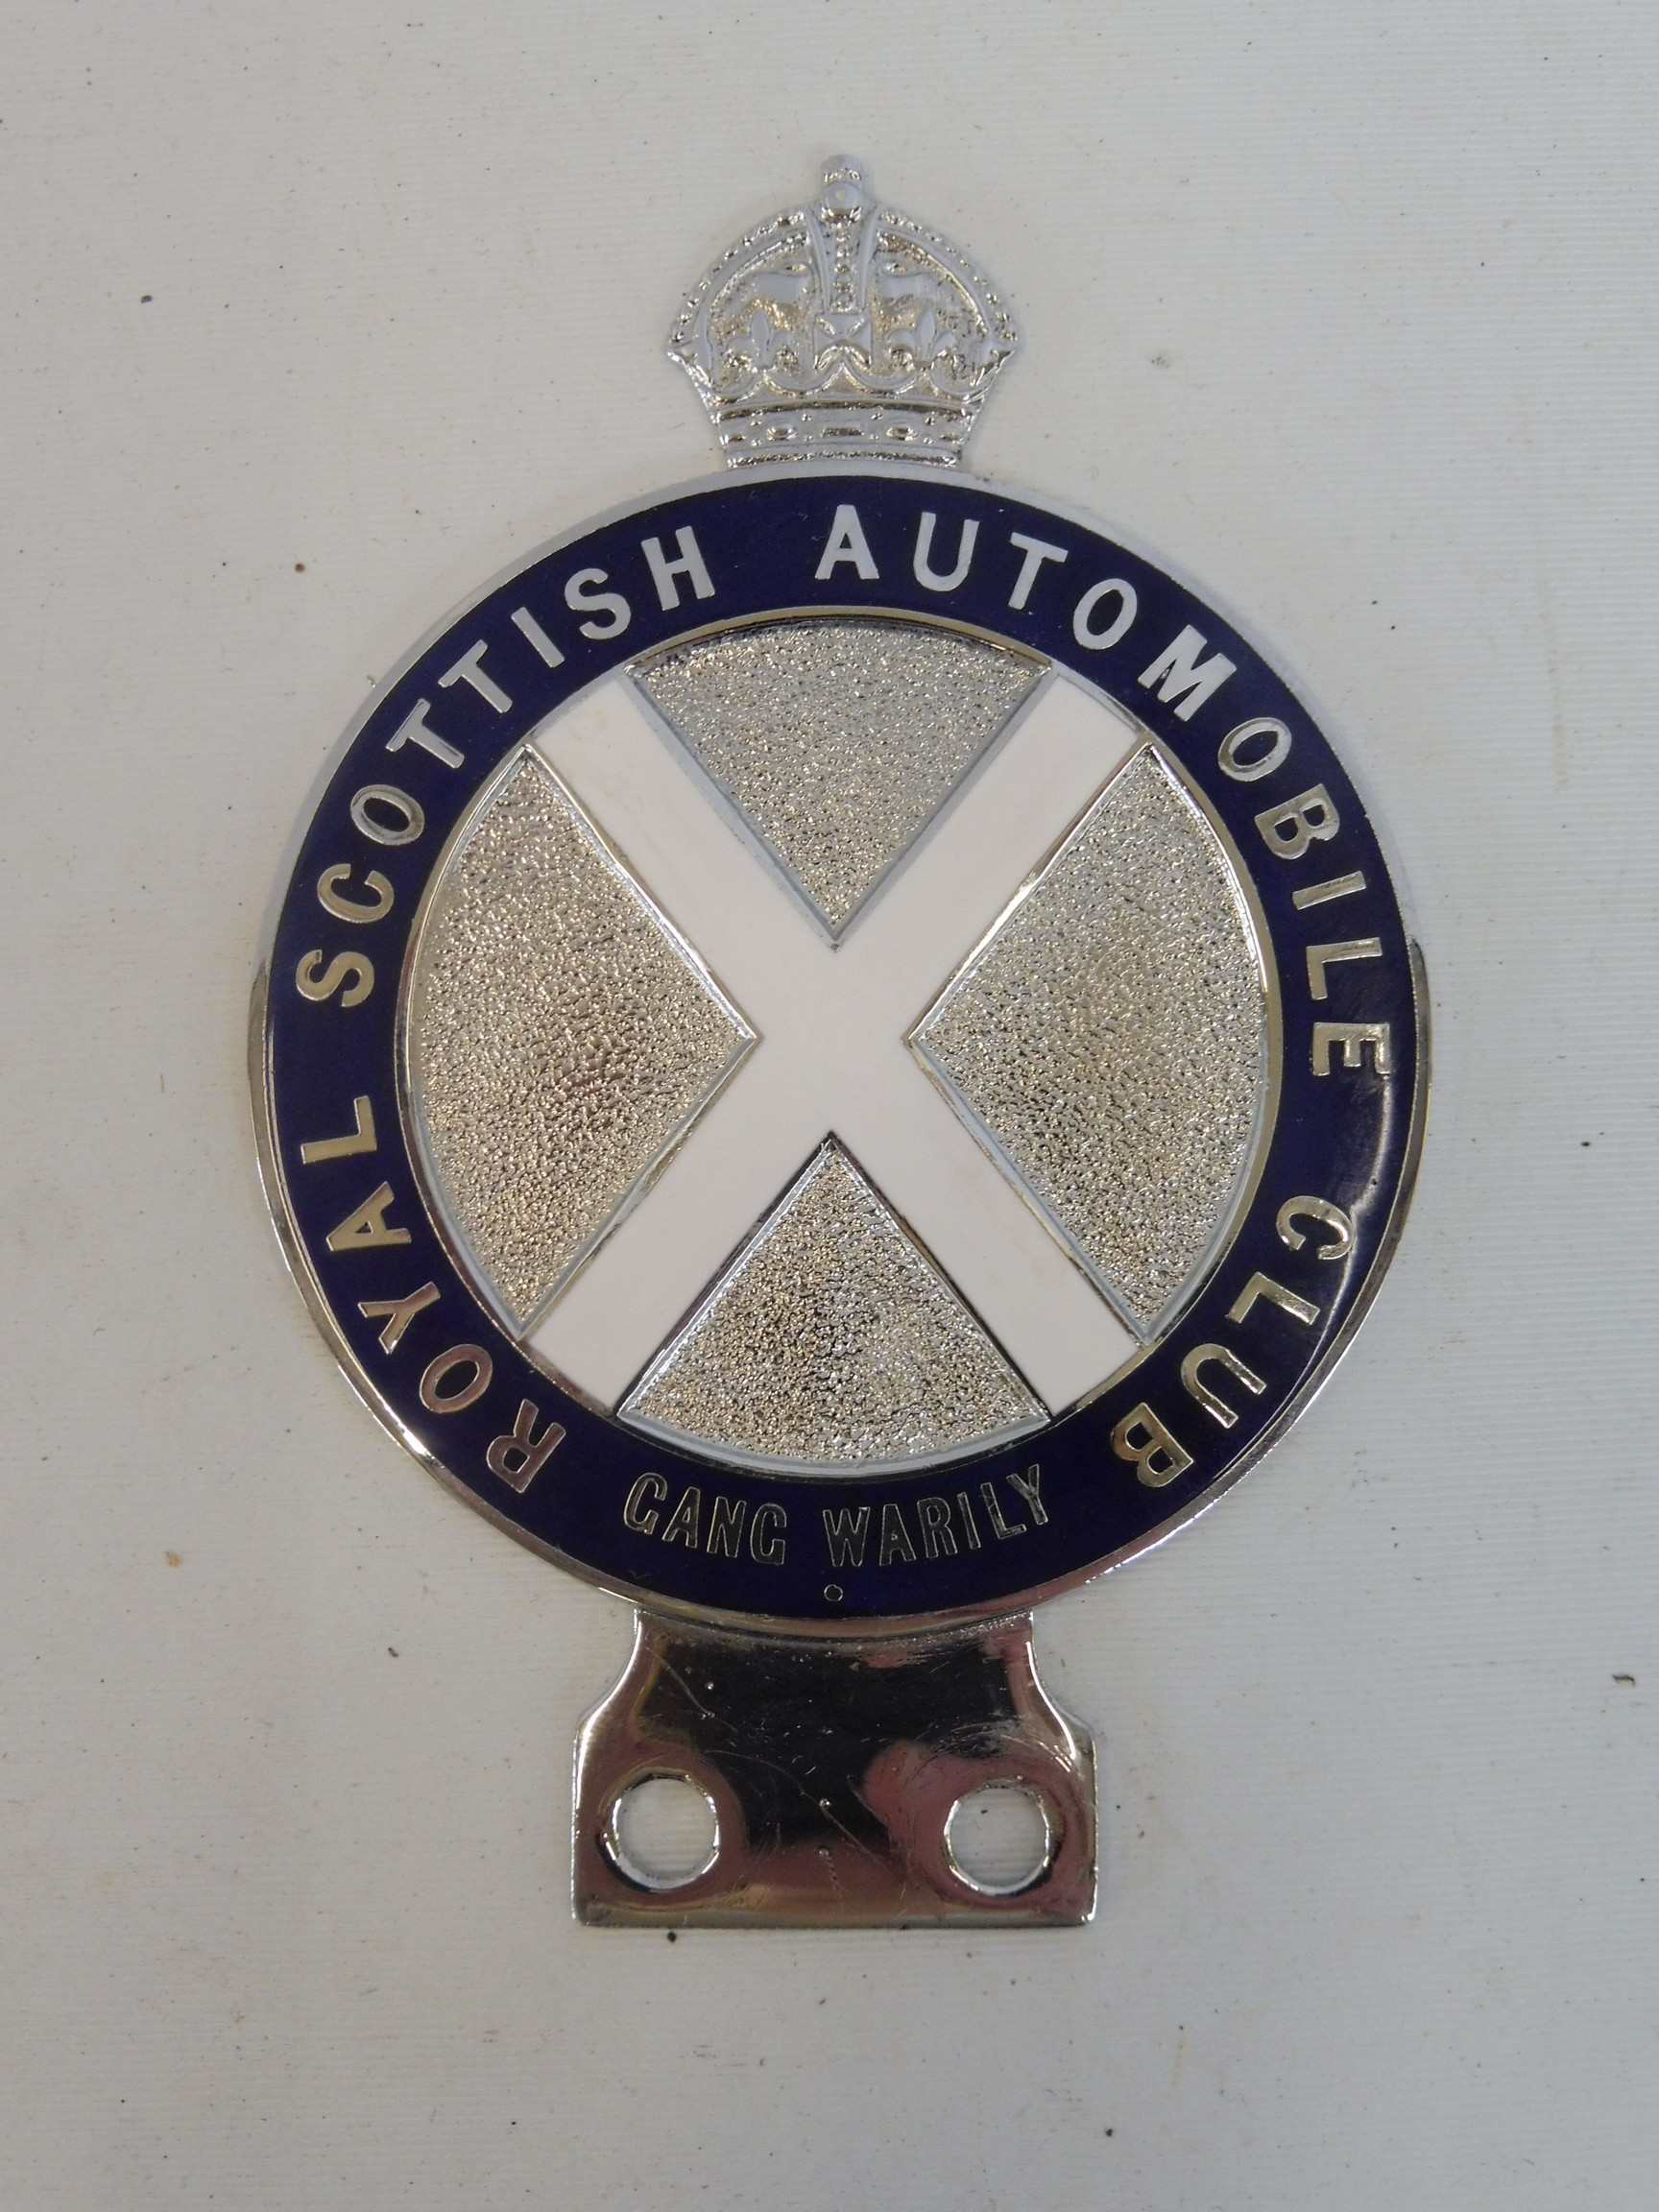 A Royal Scottish Automobile Club chrome plated and enamel badge type 5 bearing the legend 'Gang